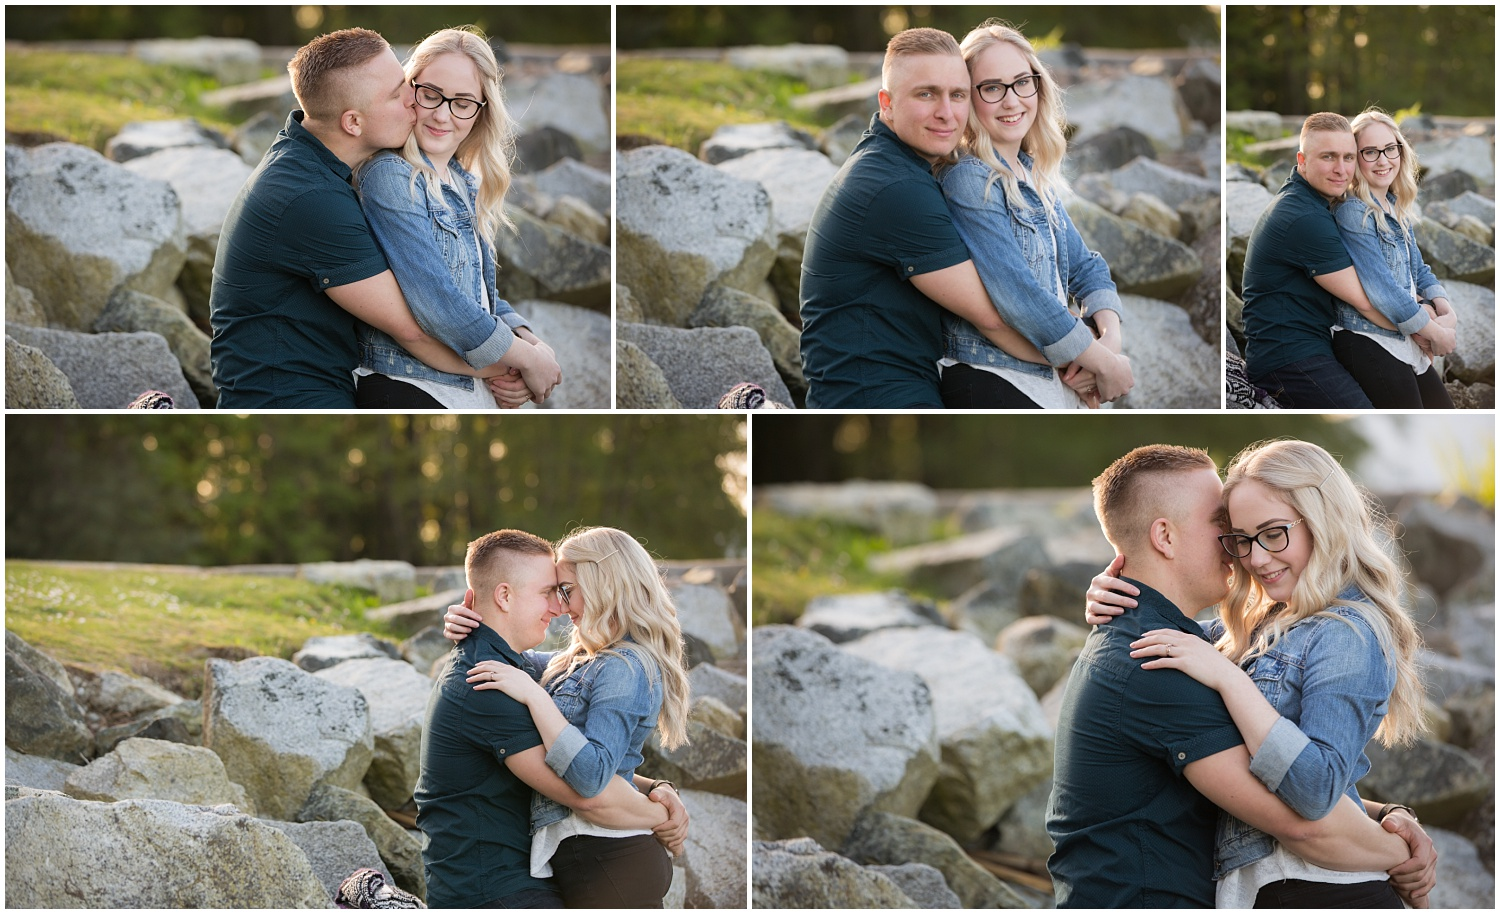 Amazing Day Photography - Barnet Marine Park Engagement Session - Burnaby Engagement Photographer - Langley Engagement Photographer (5).jpg